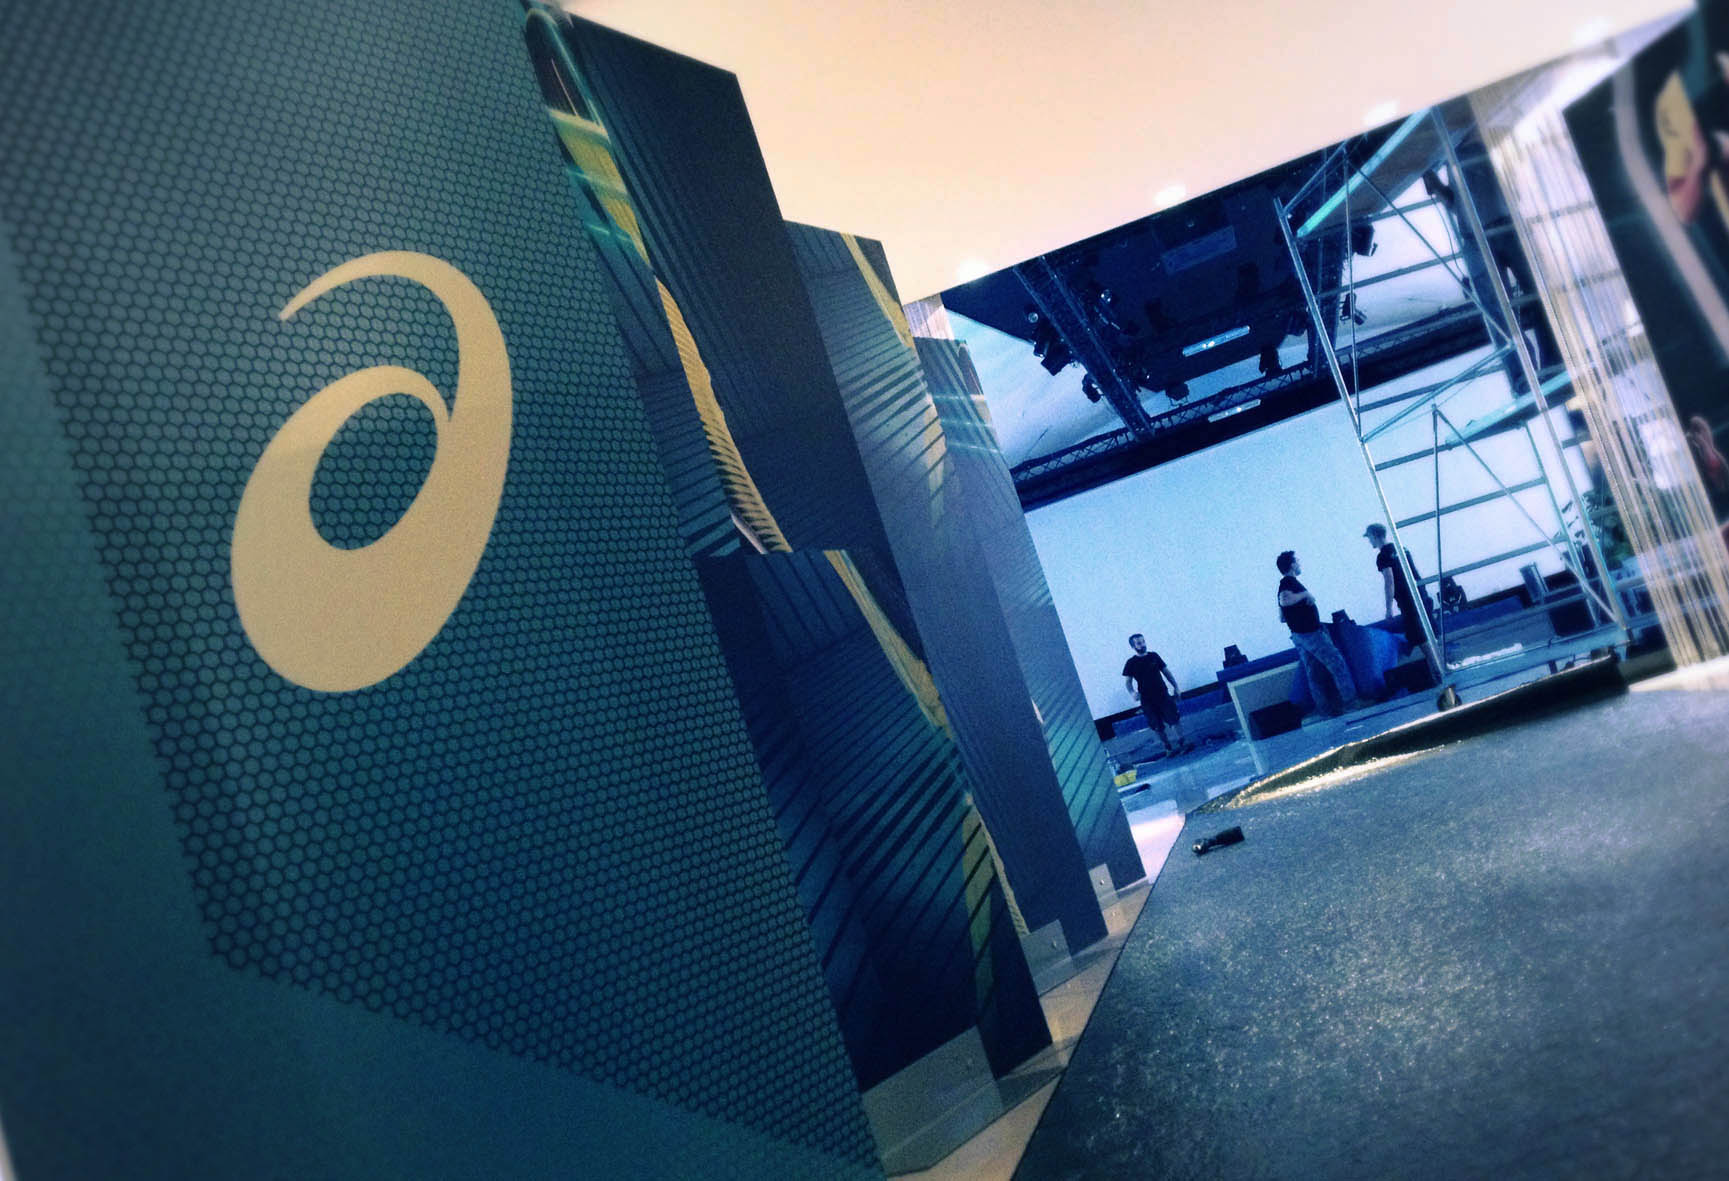 Asics J33 Launch Event Show 2013 - stage design project 05